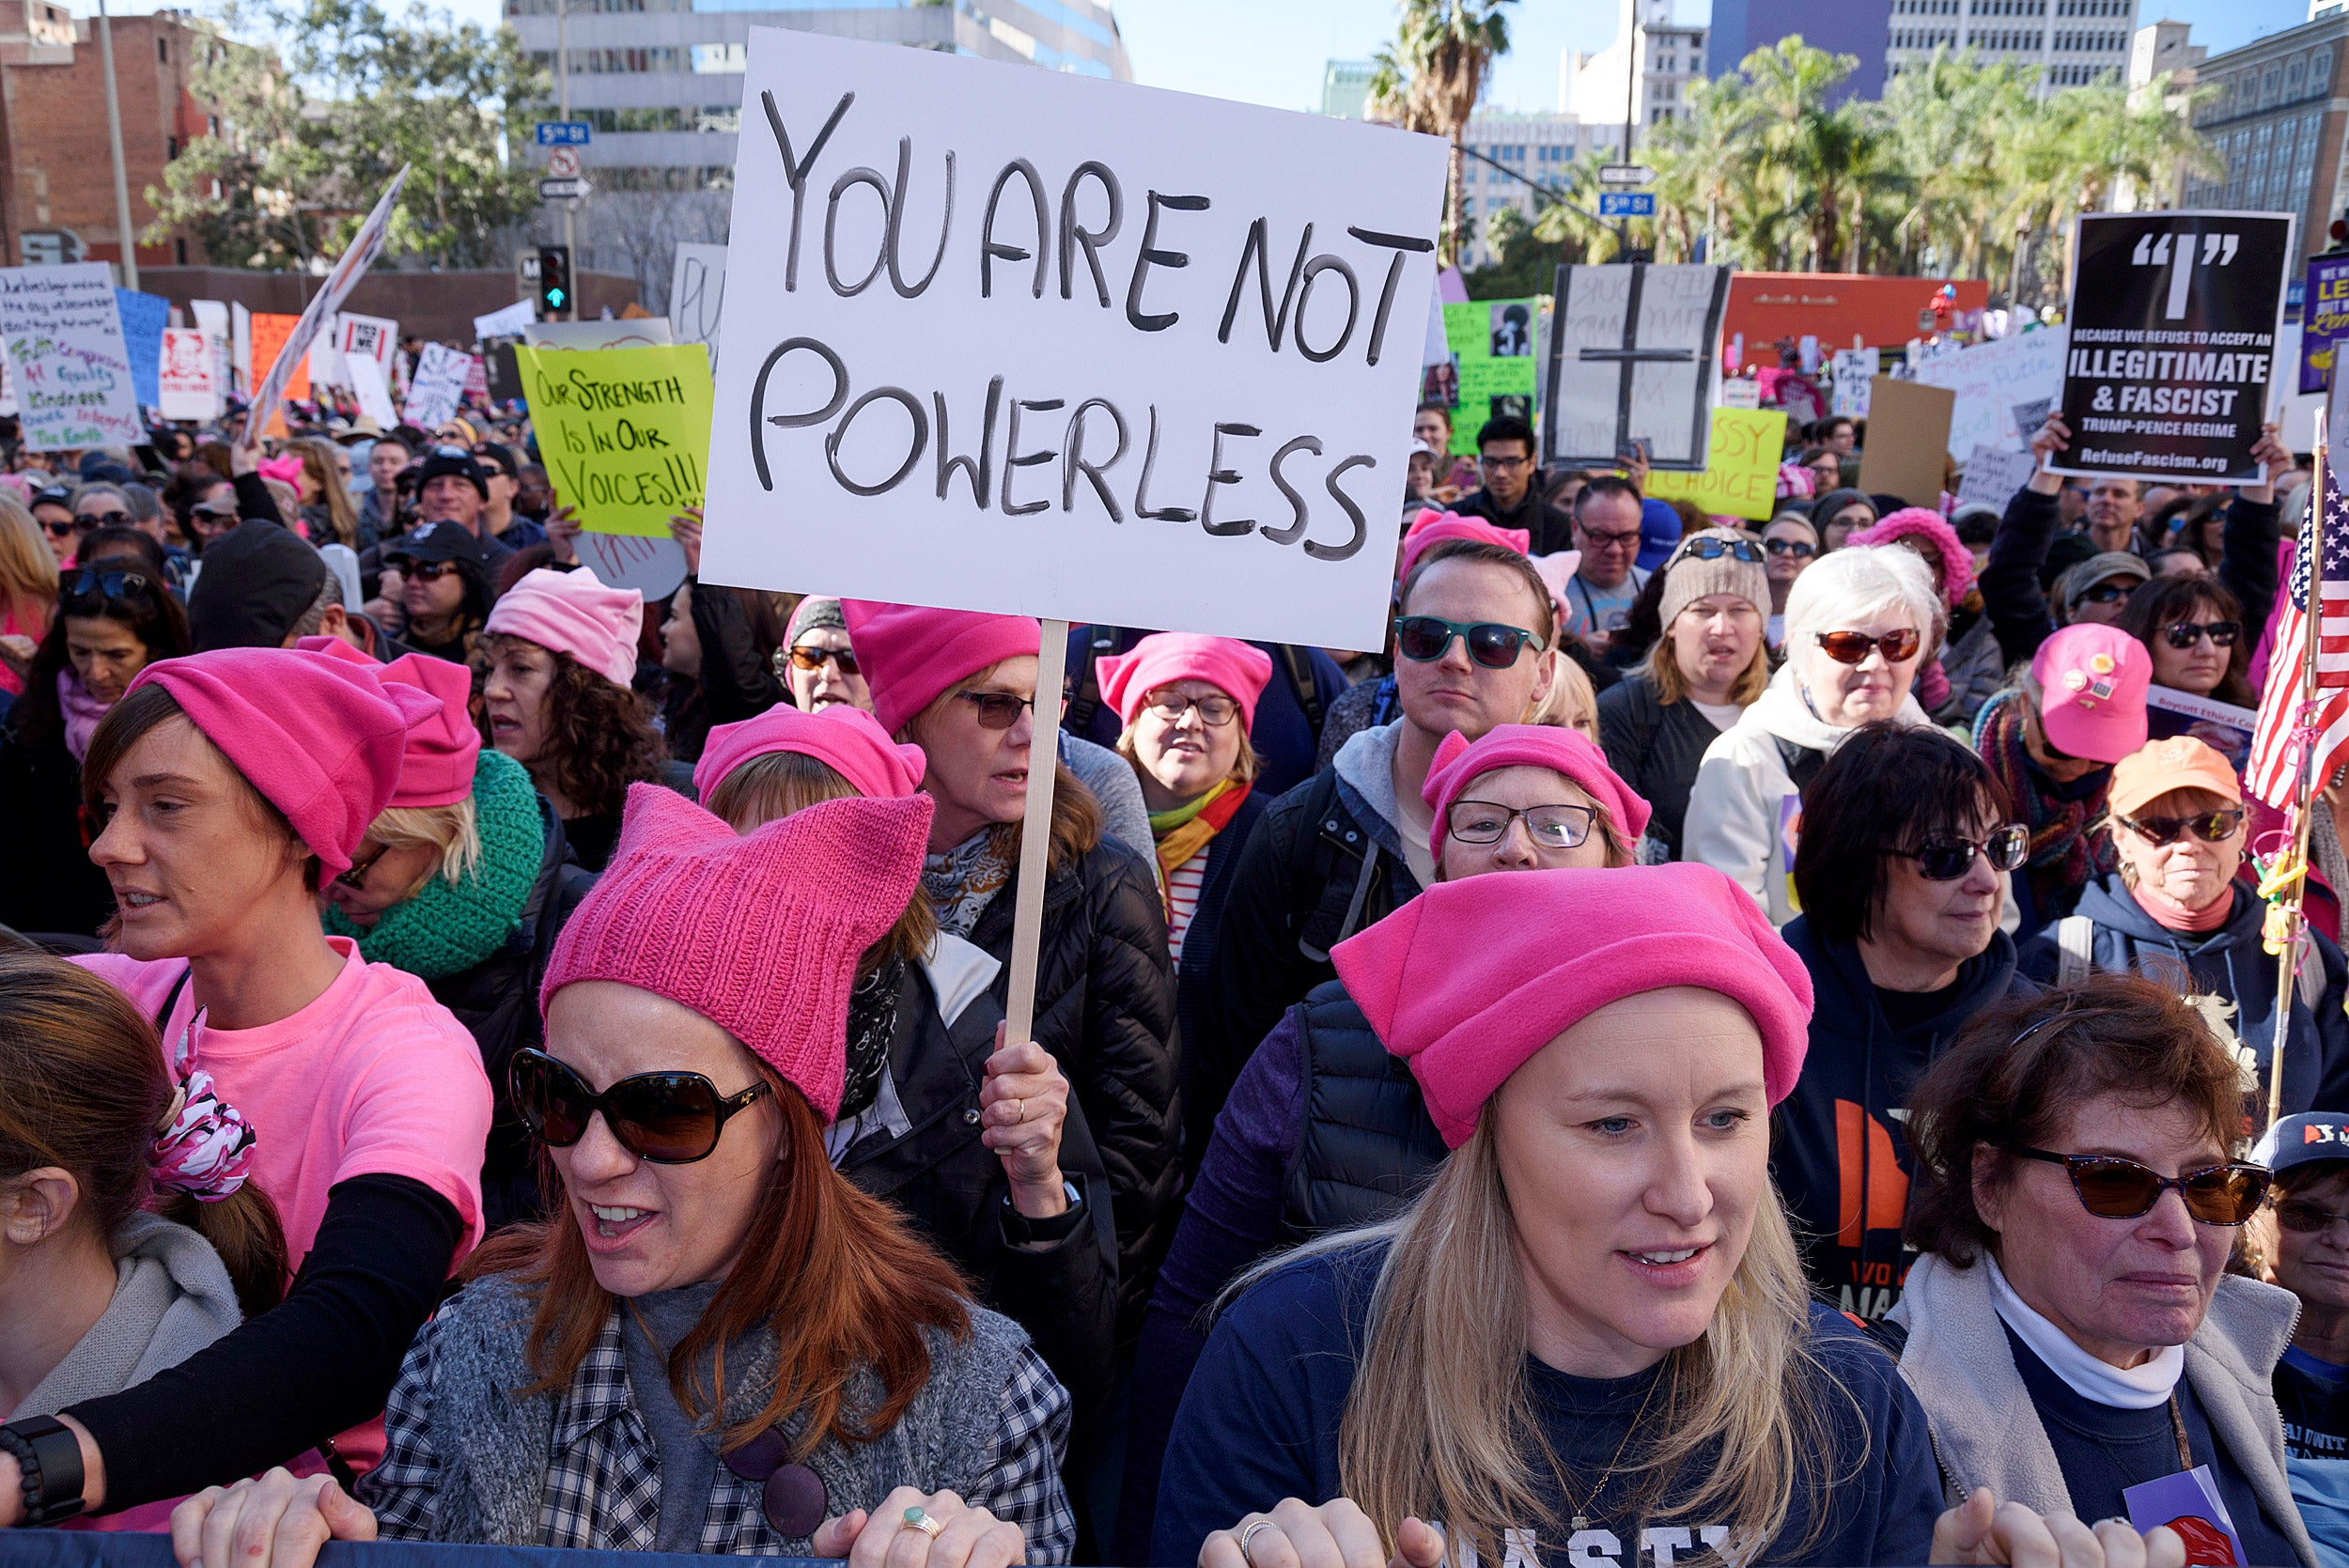 Since millions took to the streets across the U.S. for the Women's March in January, women have begun speaking out about their experiences as victims of sexual harassment or abuse in what's become known as the #MeToo Movement.